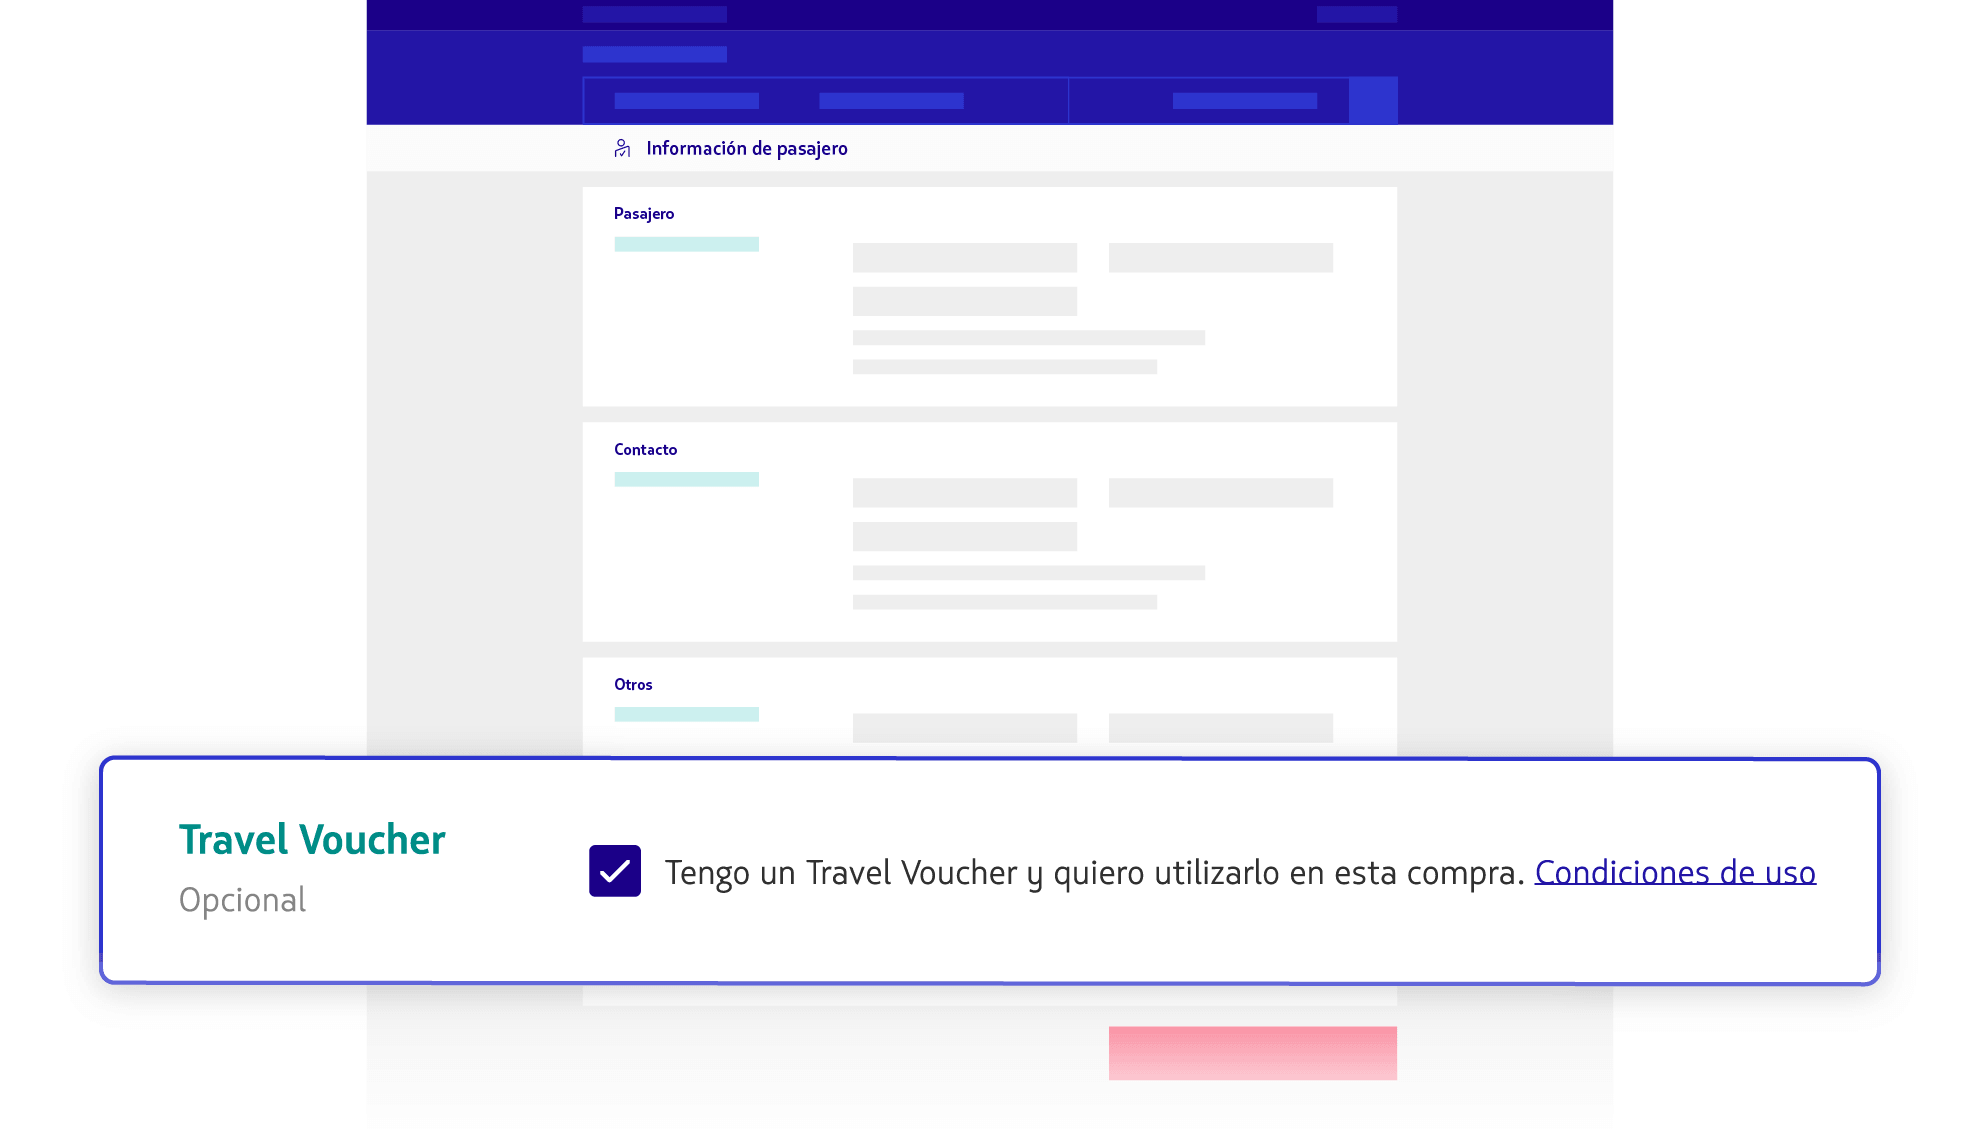 Usar Travel Voucher en la compra